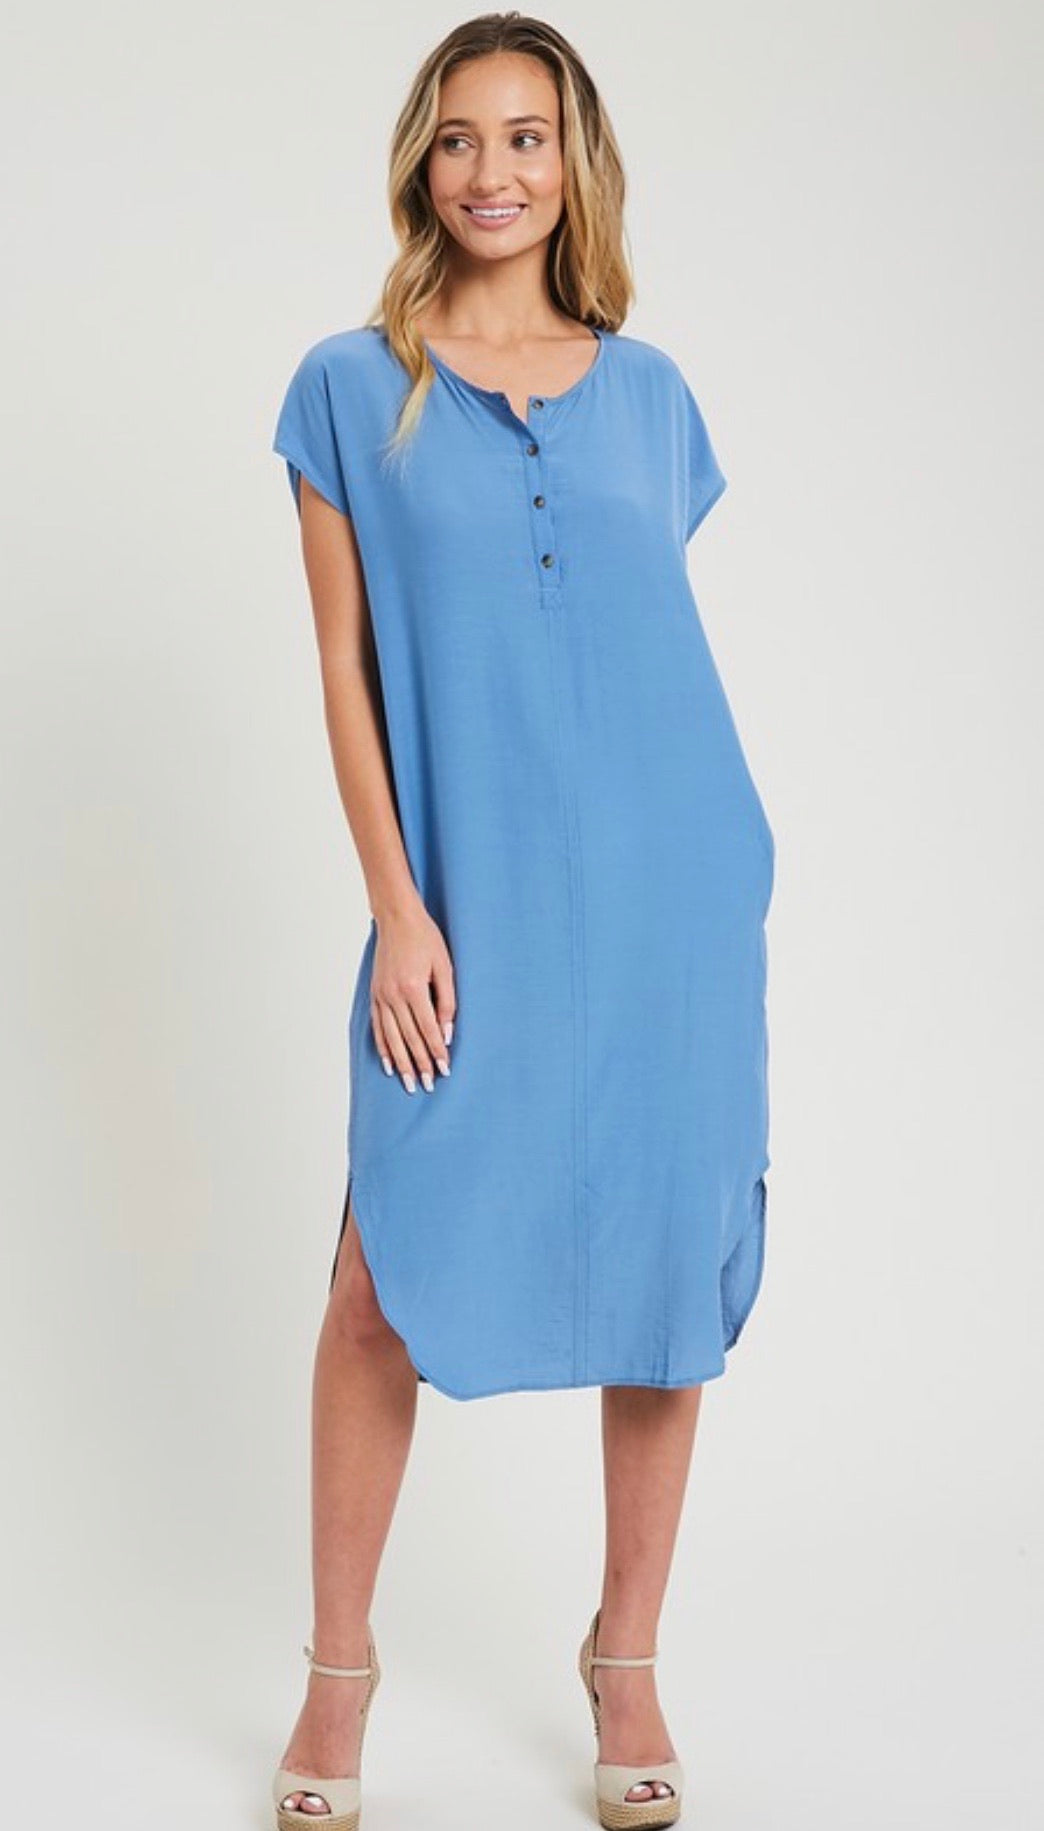 The Dana Dress in Chambray